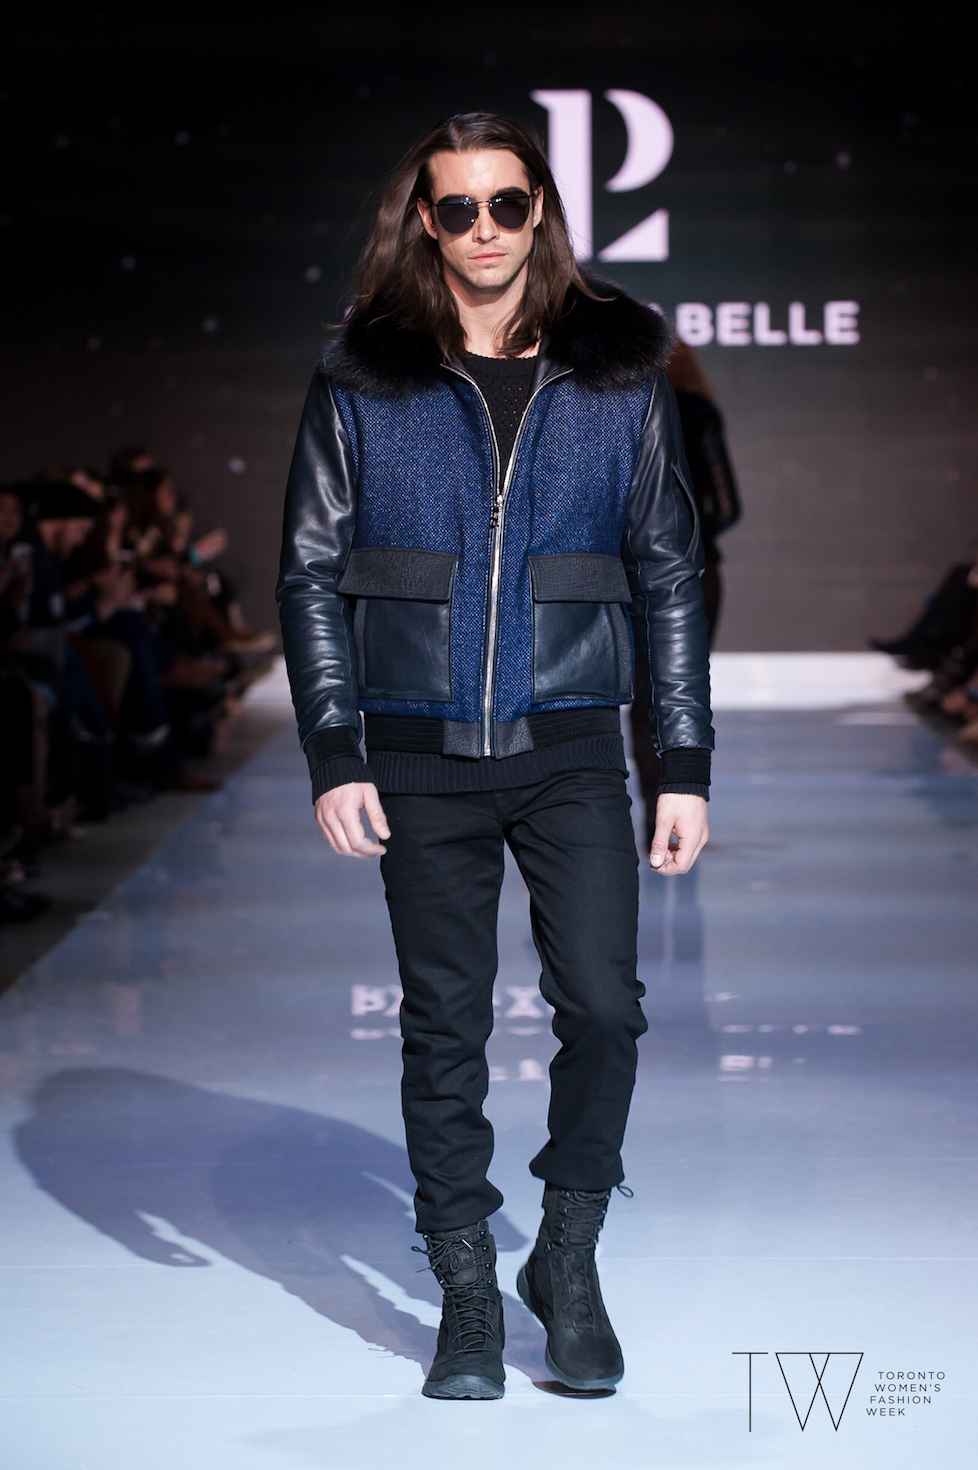 c1bfb-pascal_labelle-twfw-toronto-womens-fashion-week-photo-credit-che-rosales-mens-look-1.jpg